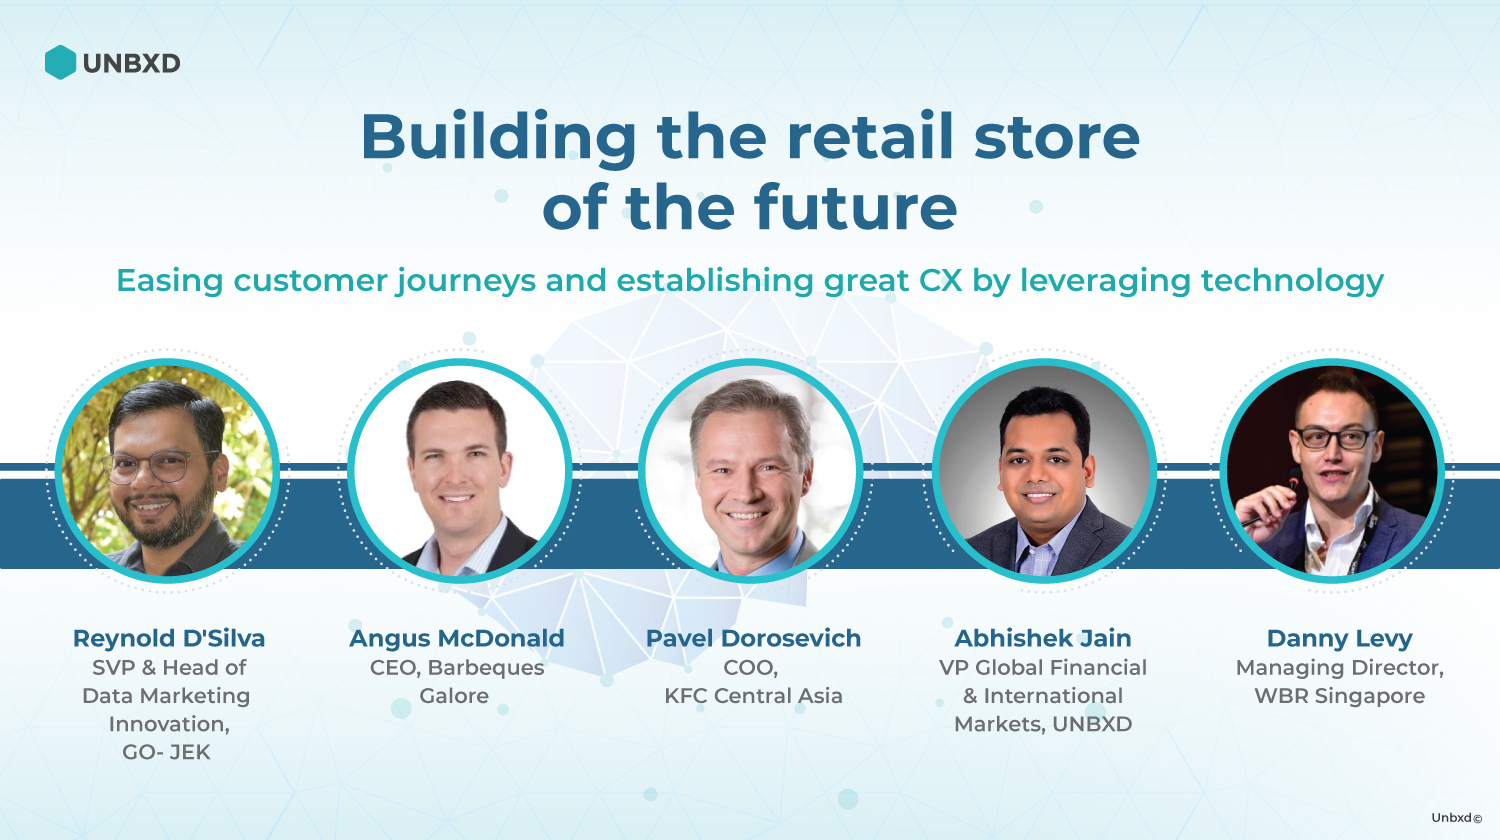 Building the retail stores of the future!